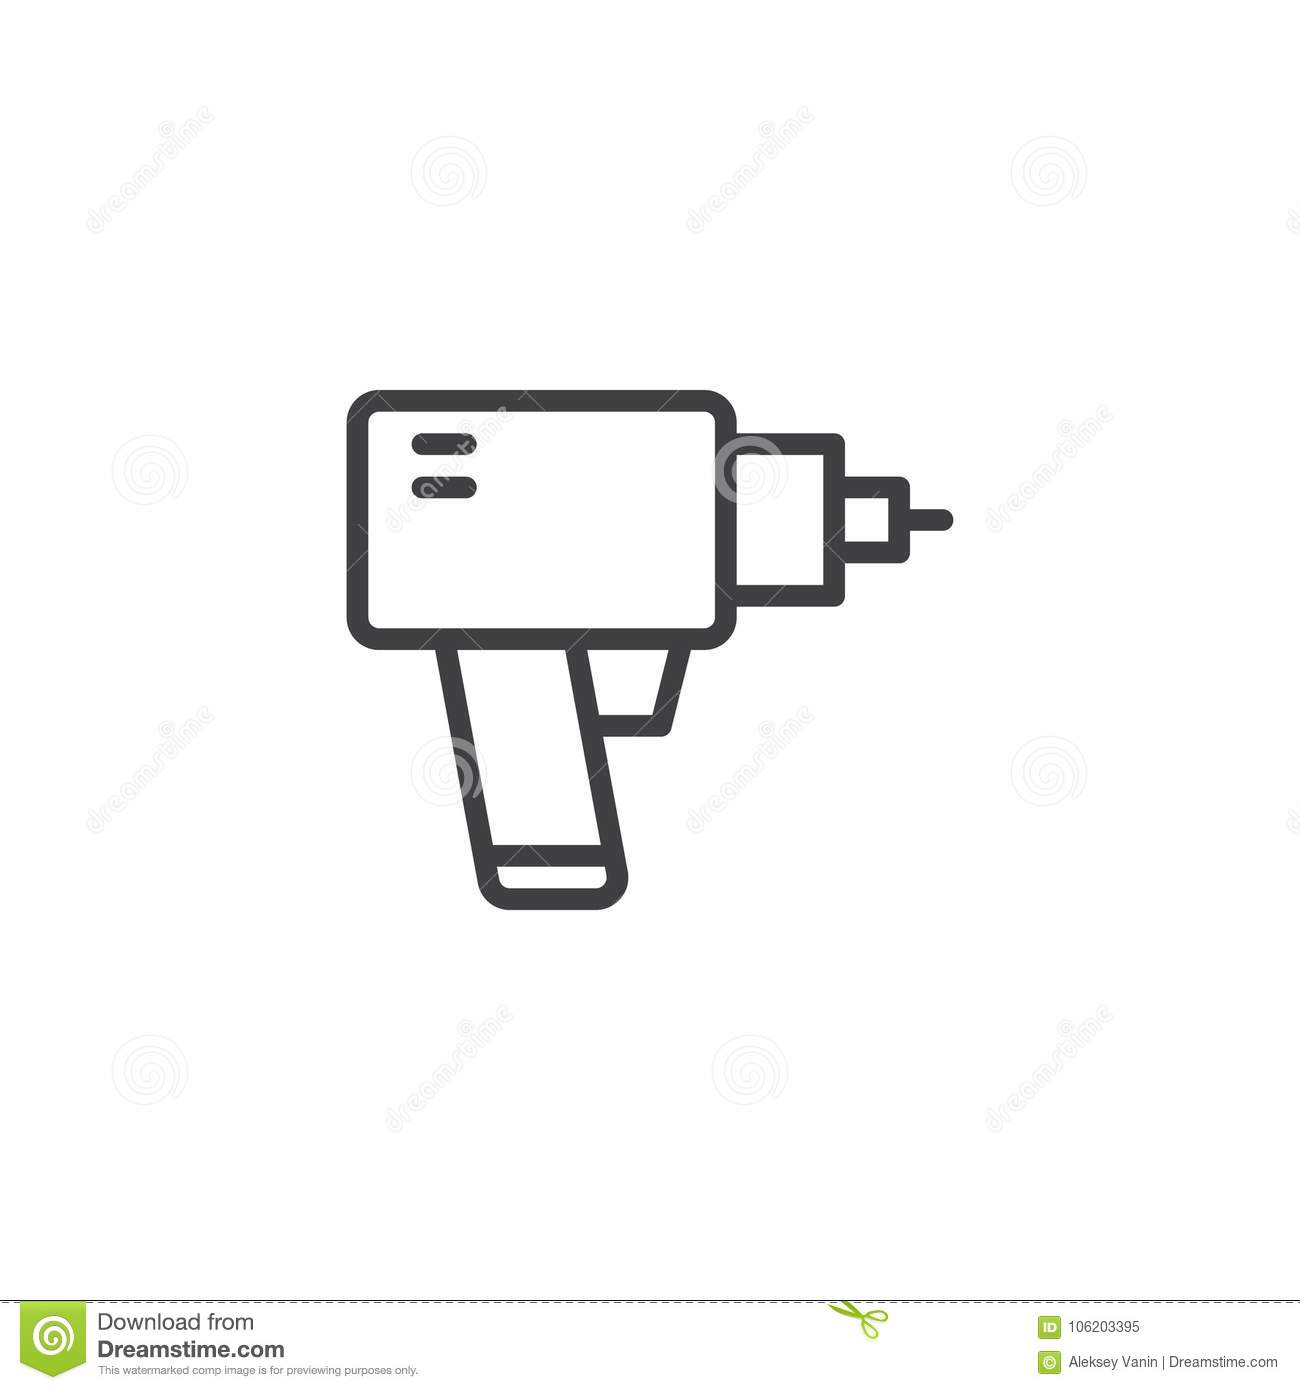 Manual Electric Driller Line Icon Stock Vector